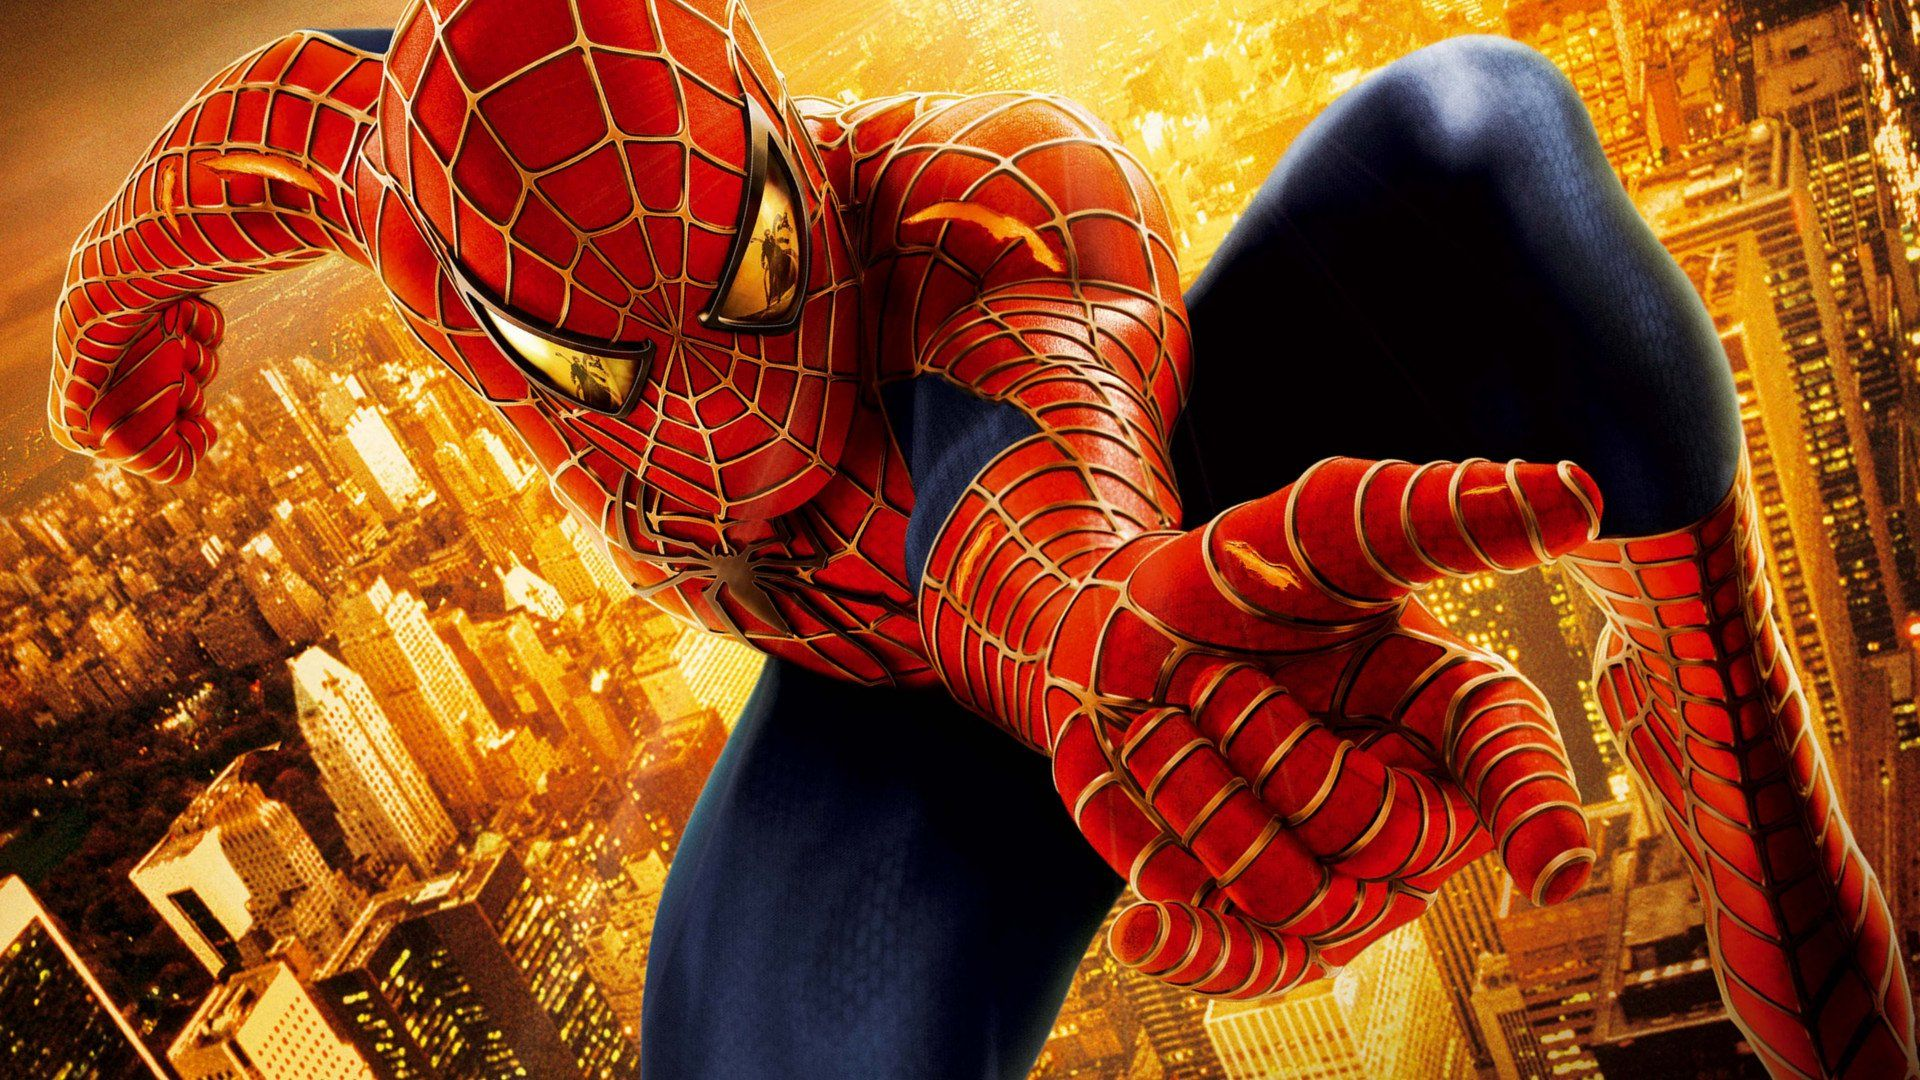 This week in Gaming History, Spider-Man released for the PC.